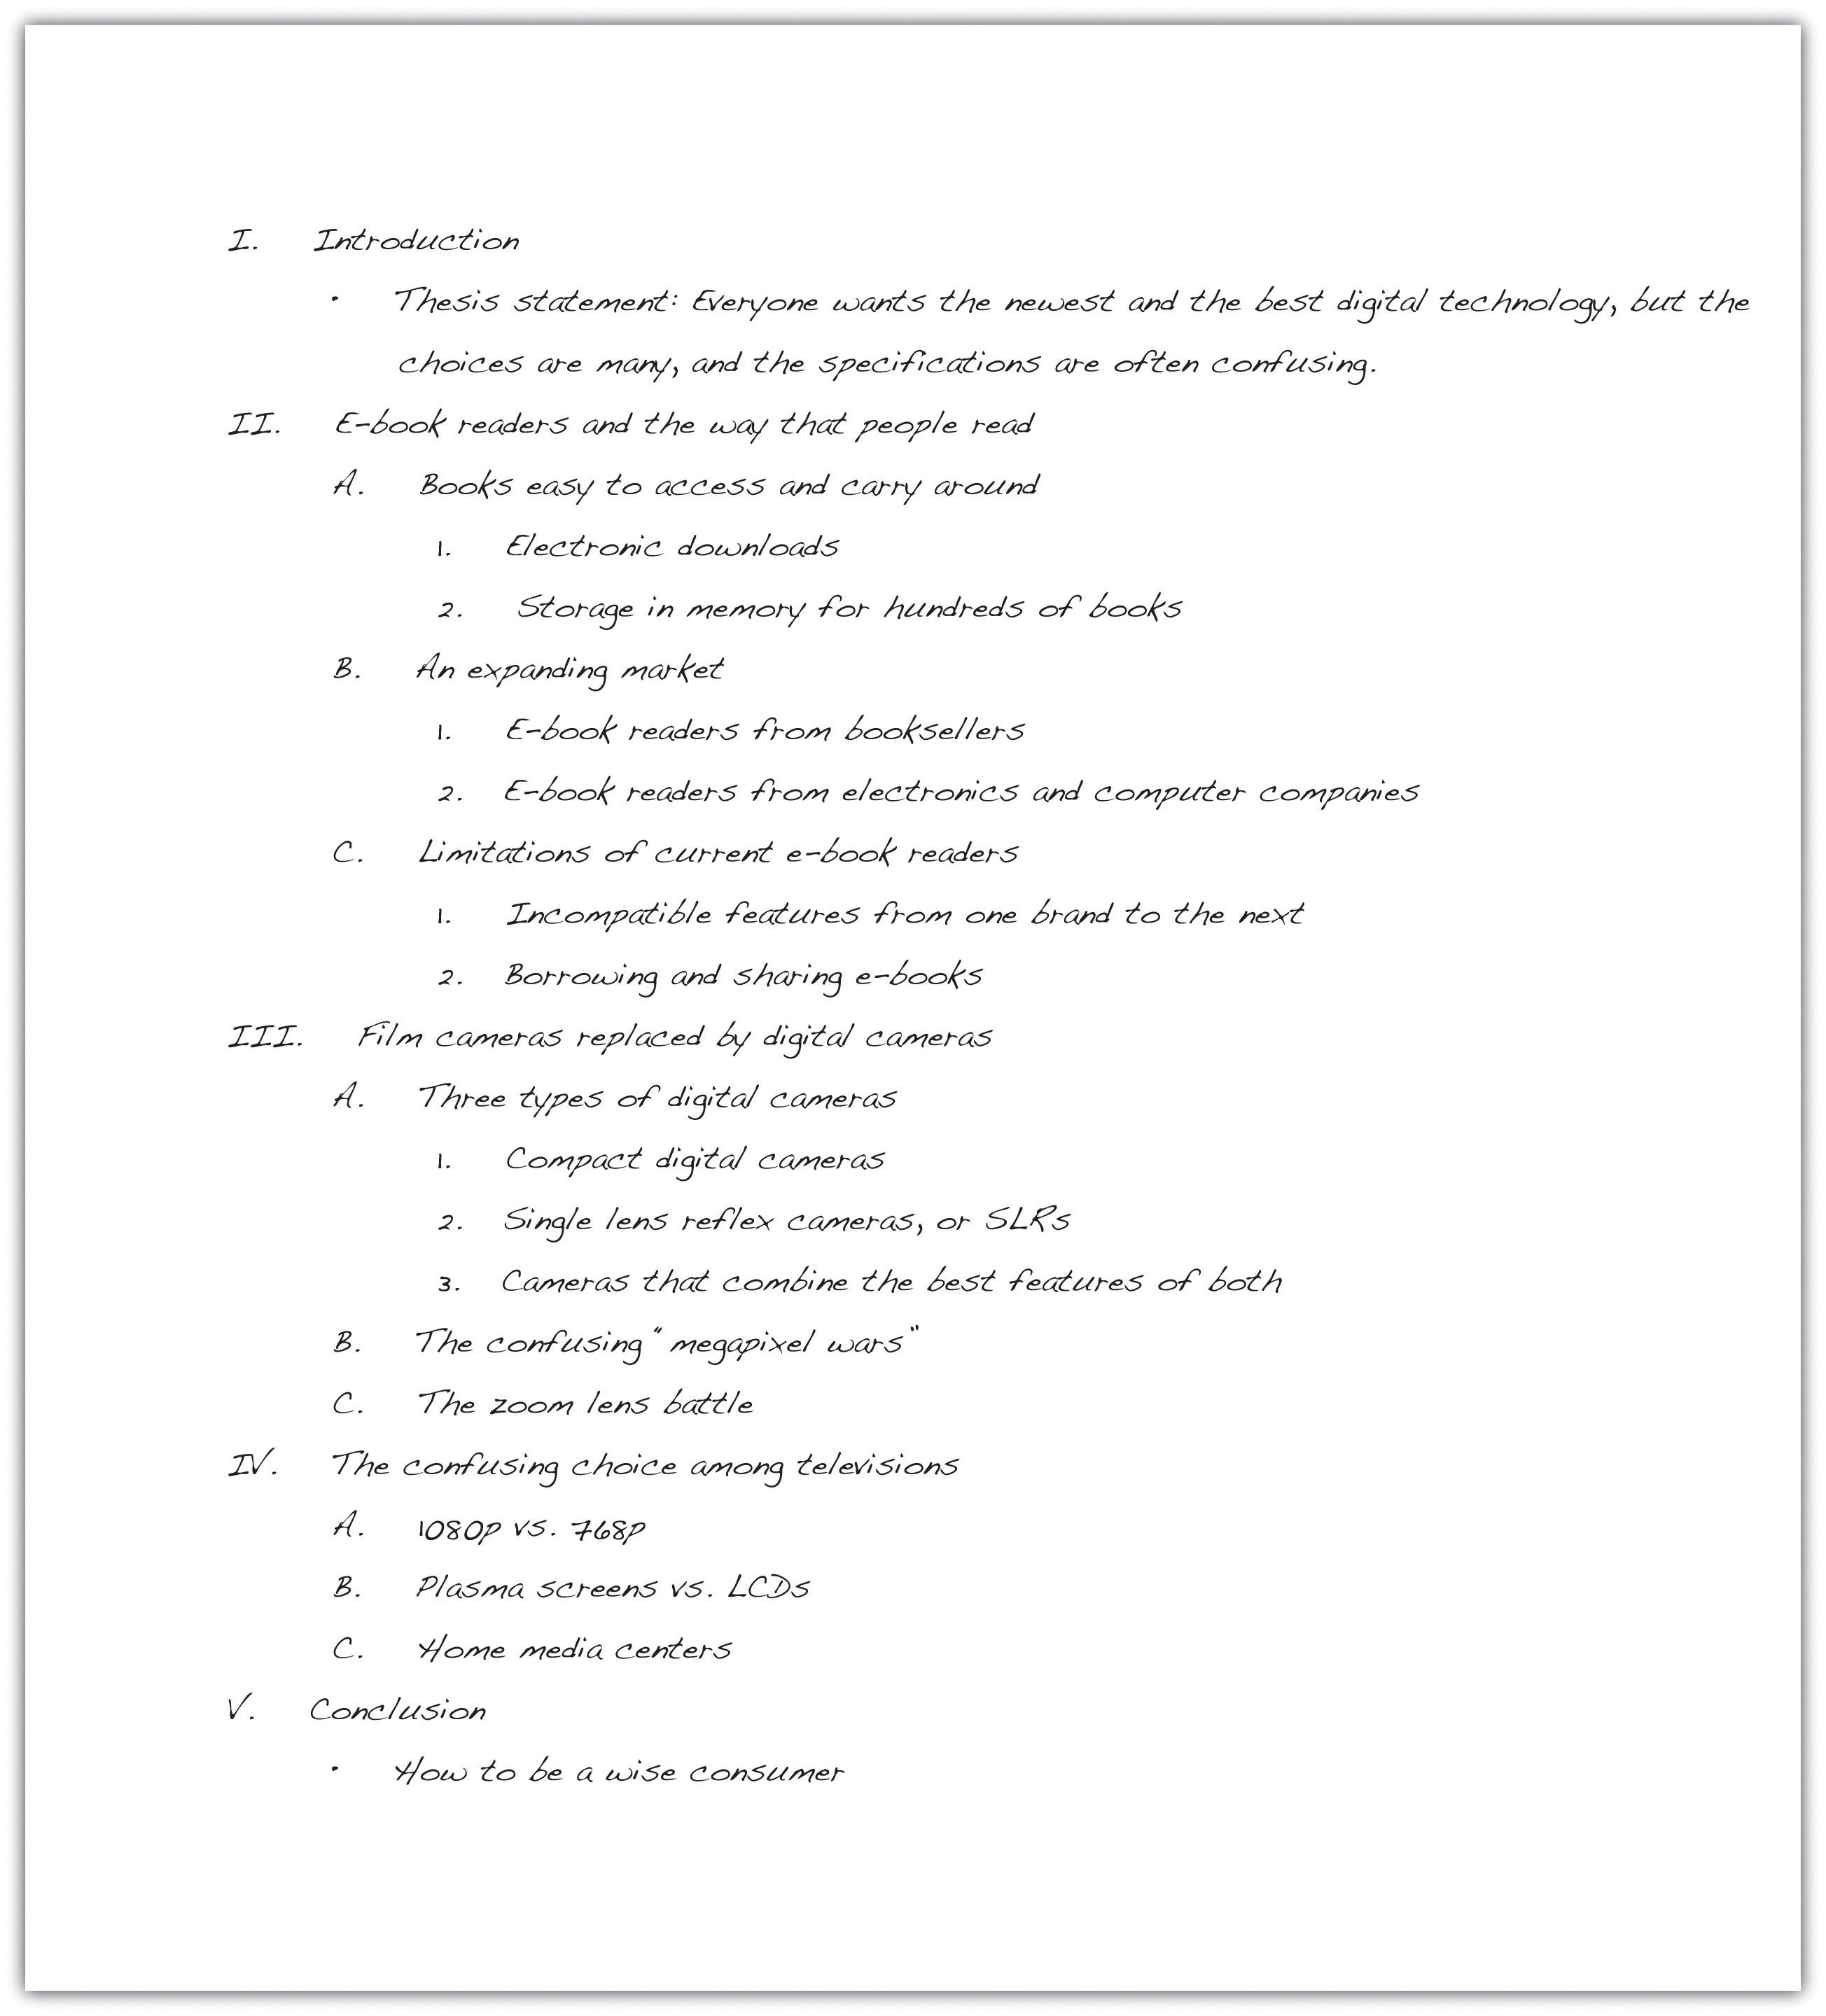 education essay outline 19 interesting argumentative essay topics related to education there are many ways in which you can develop topics and titles for an argumentative essay related to.